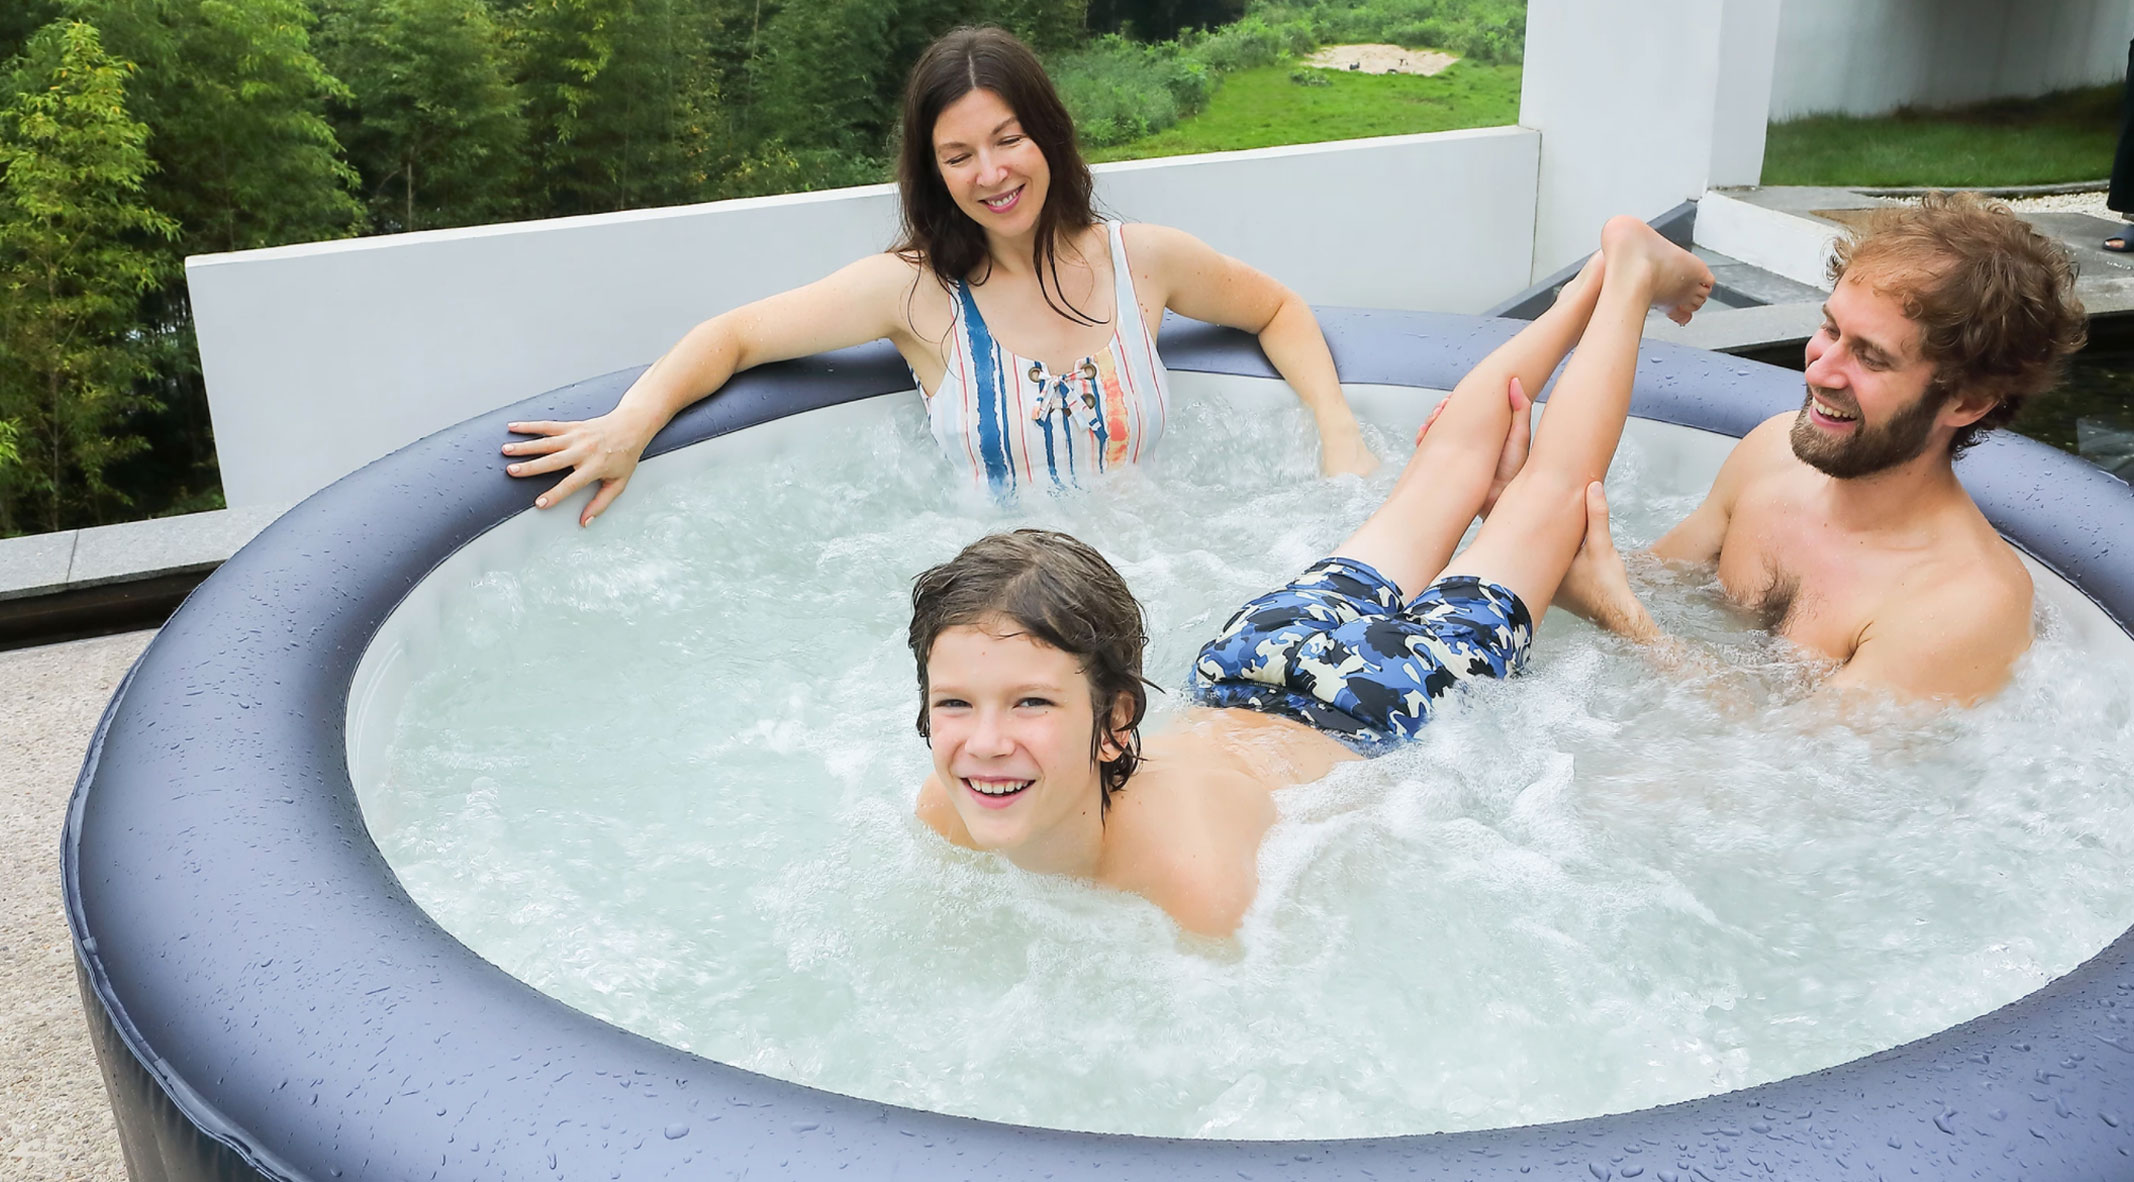 Can Children Use The Hot Tub?